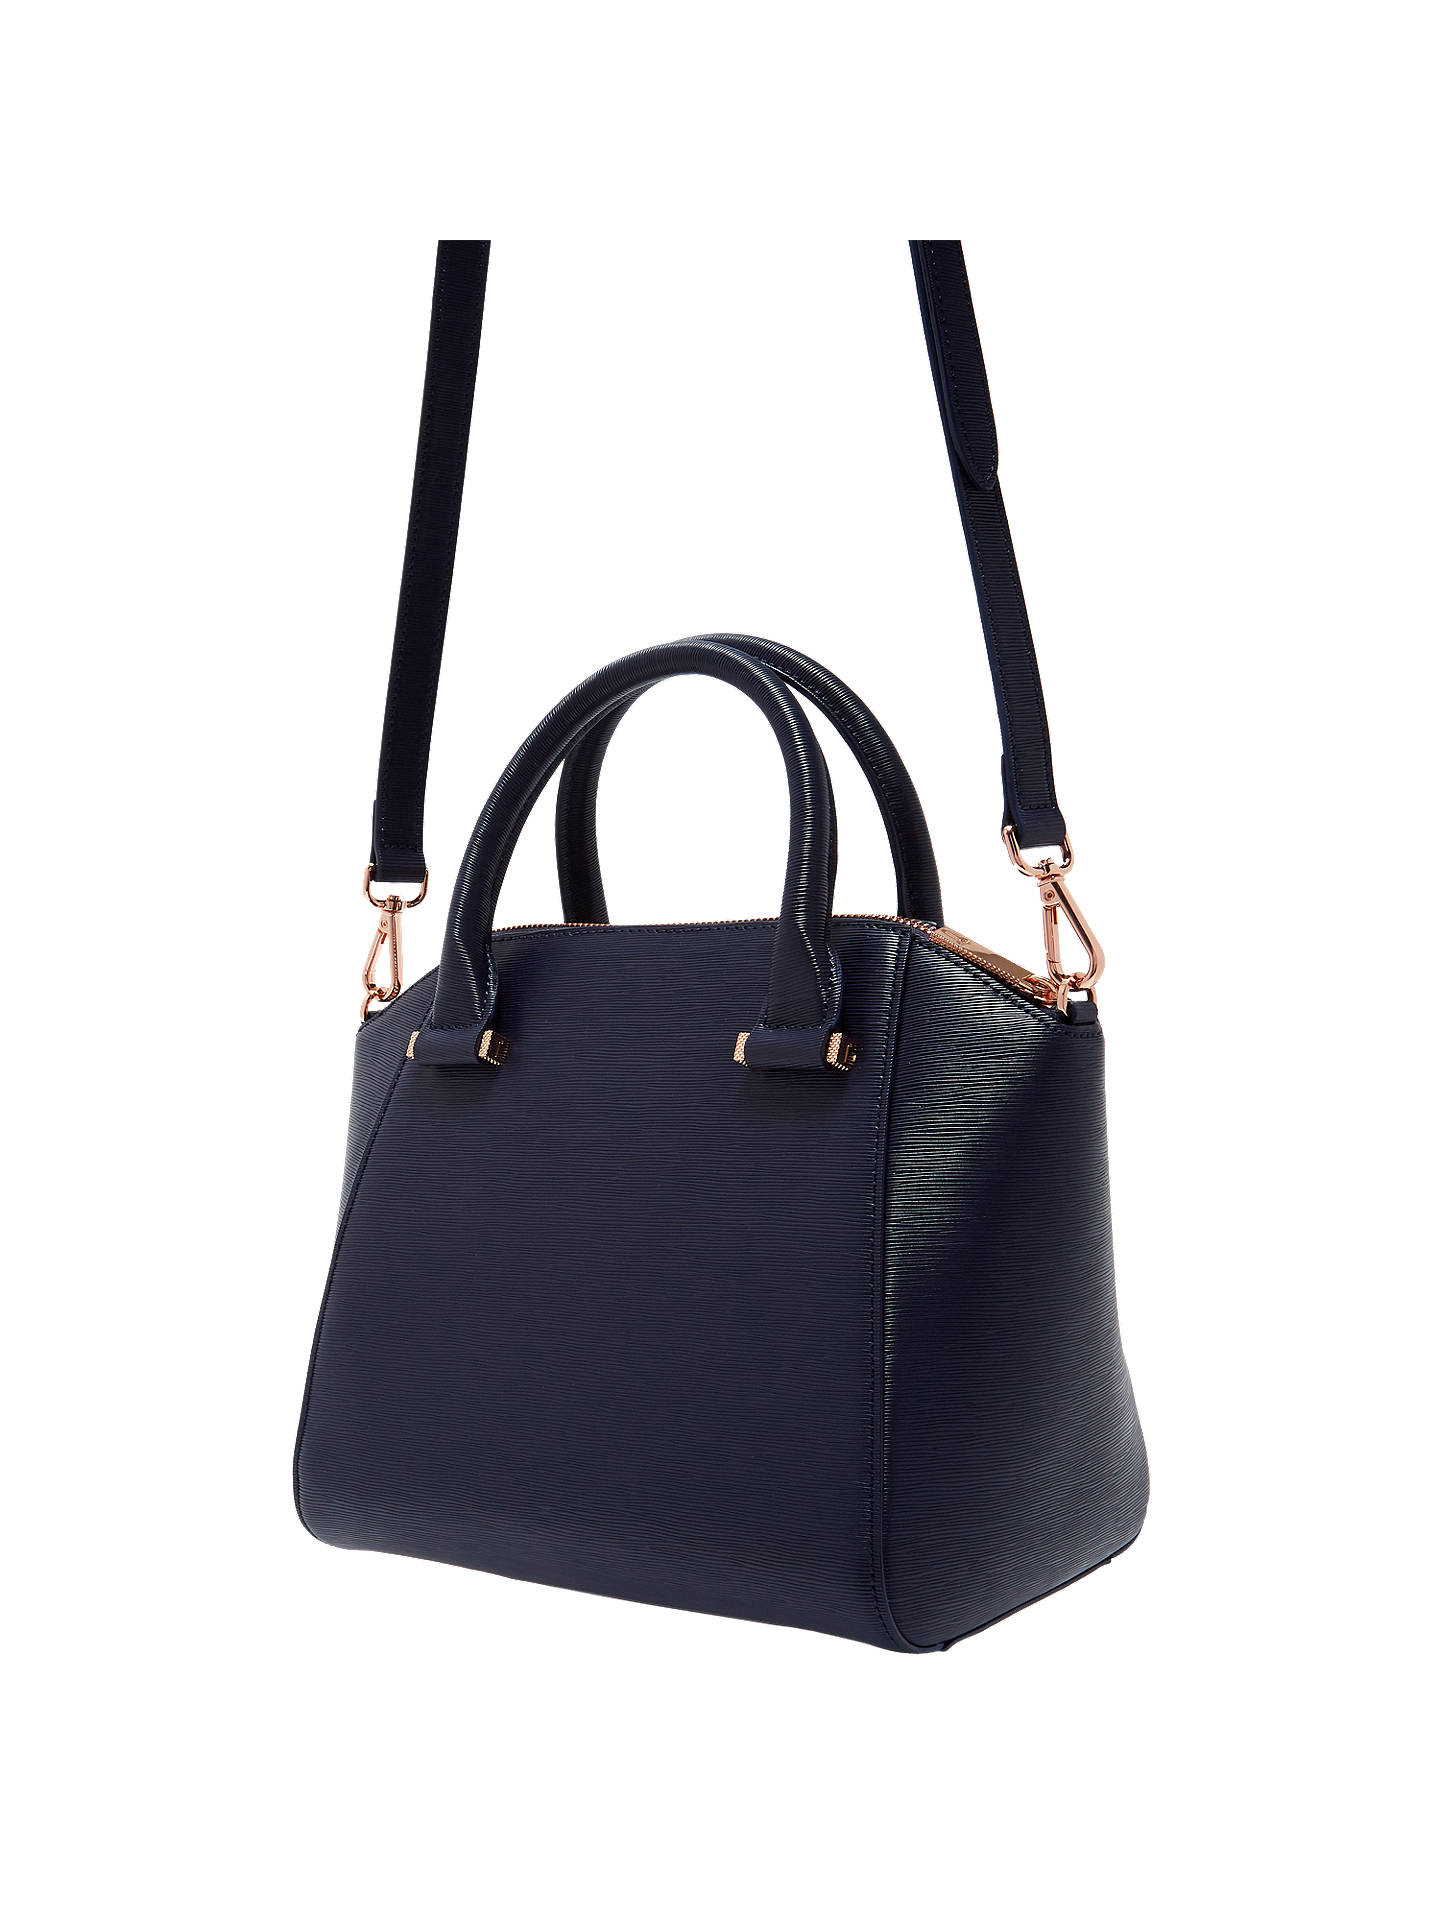 423184b3e64 Ted Baker Cala Bow Small Leather Tote Bag, Dark Blue